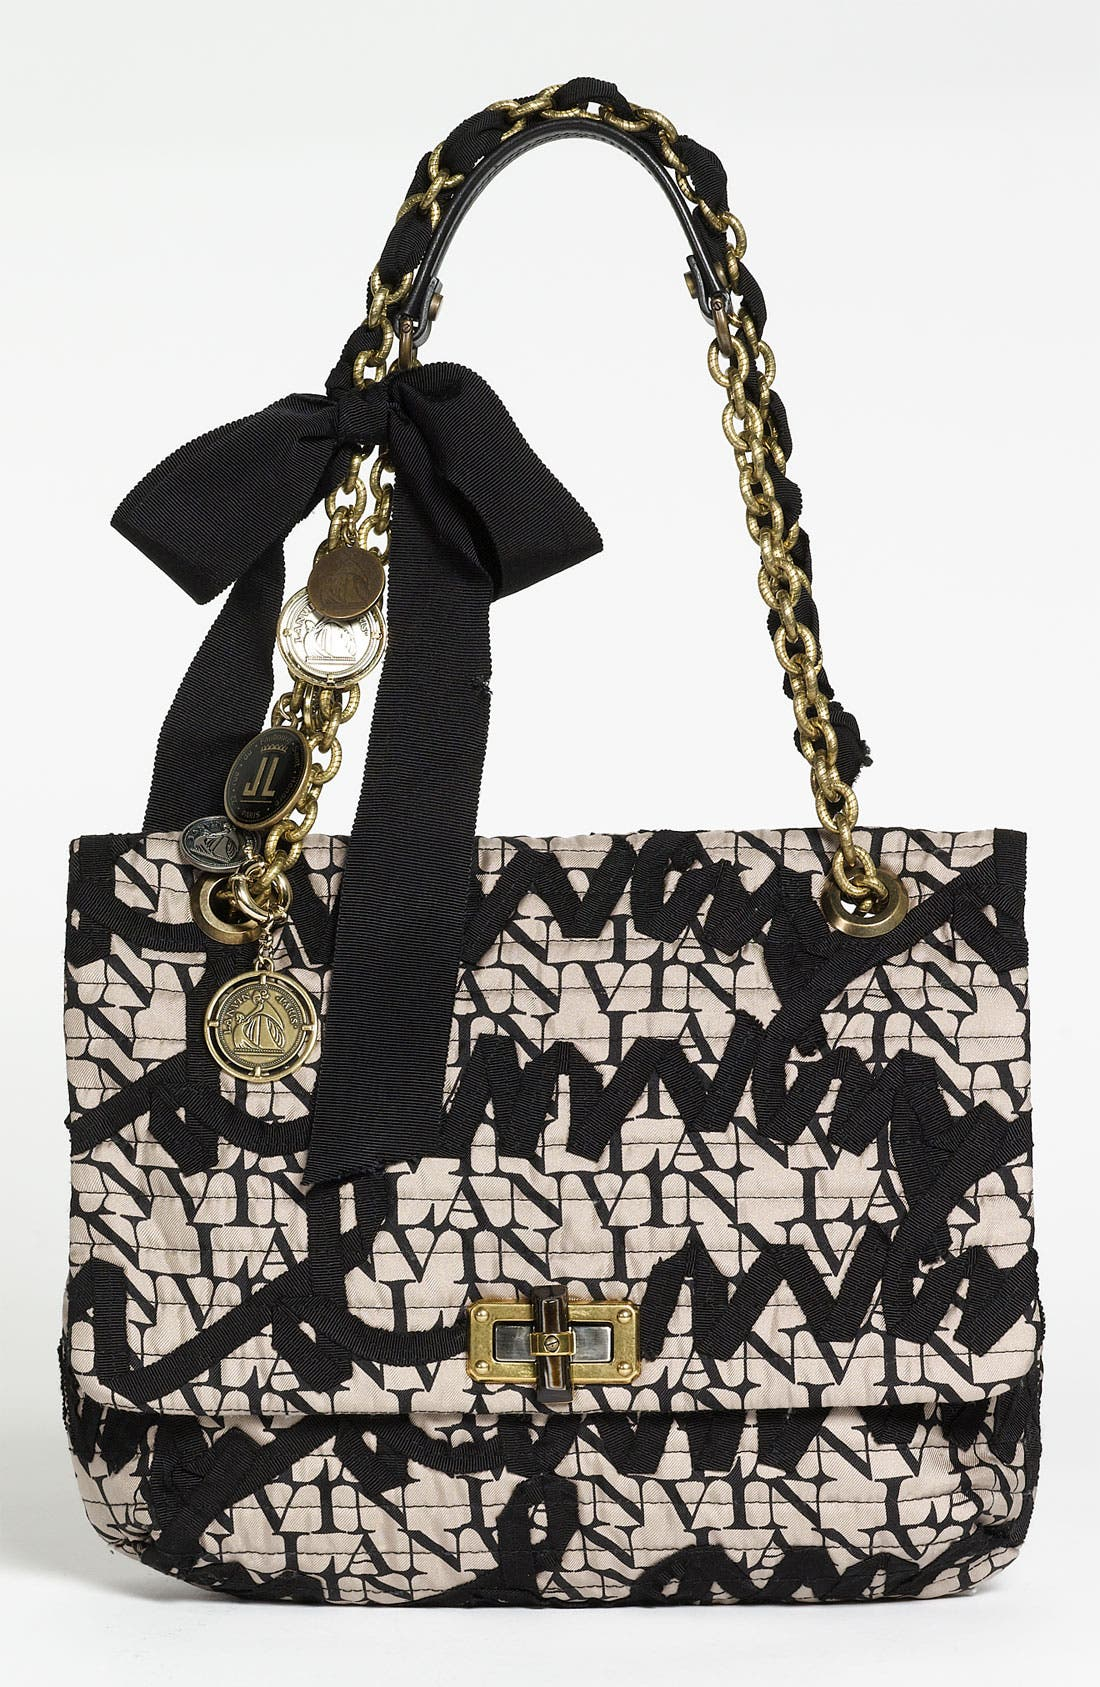 Alternate Image 1 Selected - Lanvin 'Happy Birthday' Embroidered Shoulder Bag